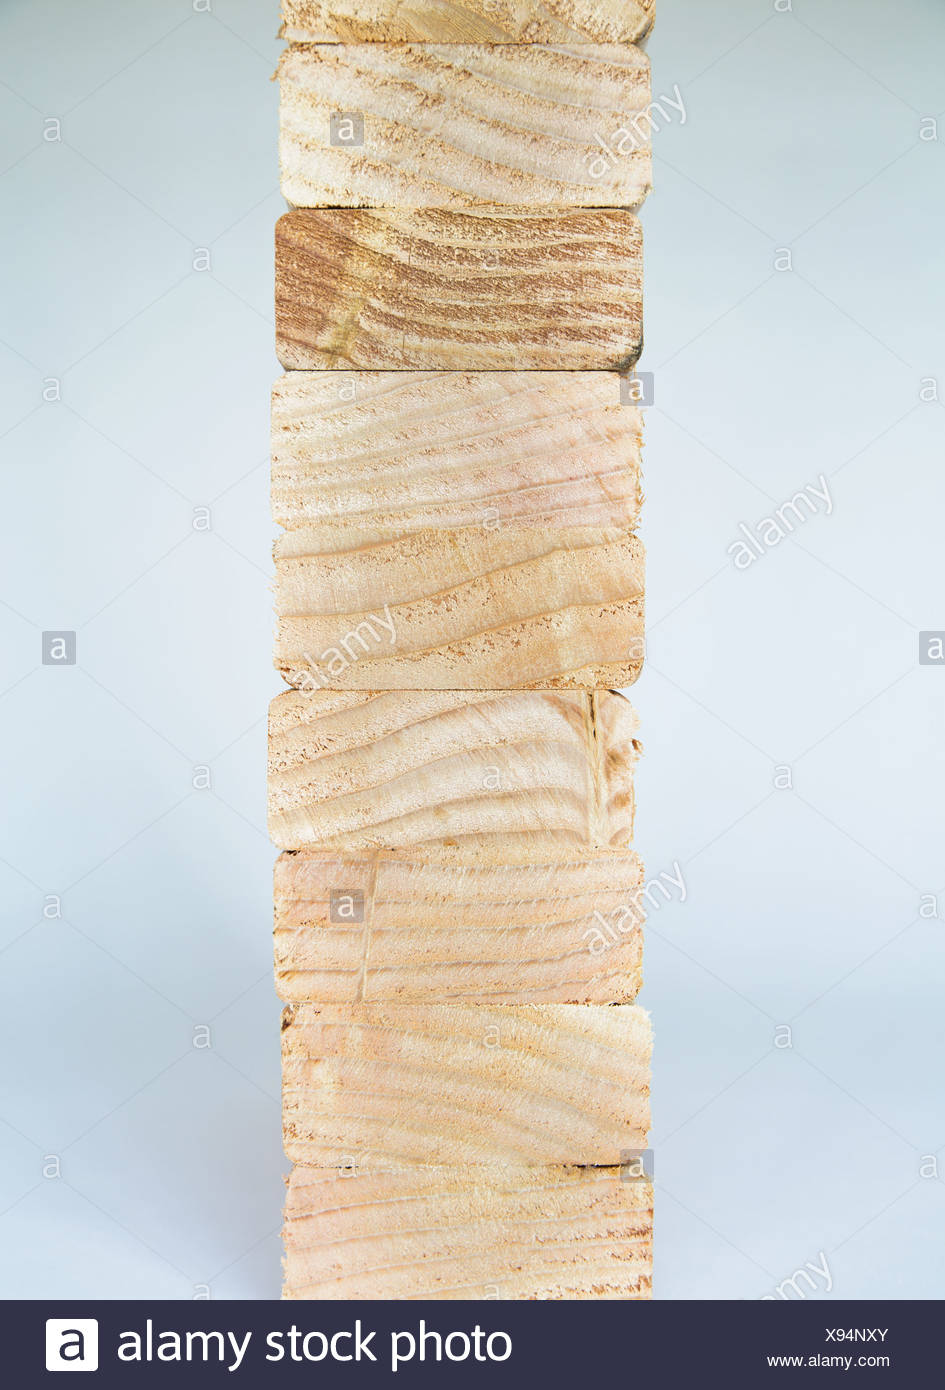 Wood material stock photos images